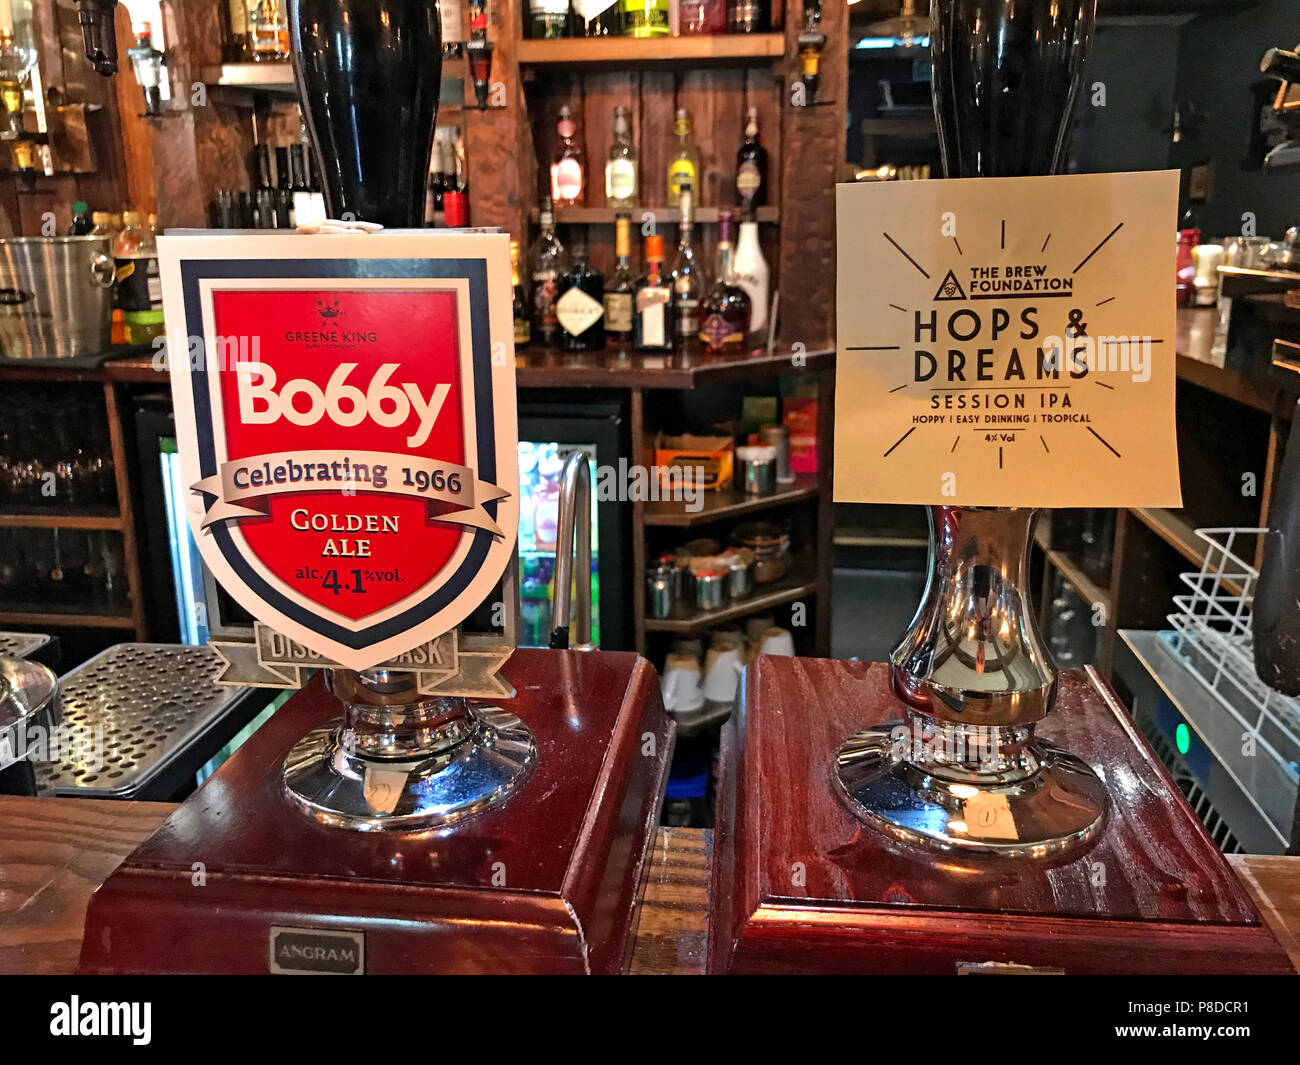 @HotpixUK,GoTonySmith,South Yorkshire,South,Yorkshire,England,UK,Greene King,Bobby,Bo66y,1966,Golden Ale,World Cup,Brew Foundation,session,IPA,CAMRA,realale,real ale,ale,Ale,session IPA,Austerfield,Doncaster,bar,pub,Bobby Moore,beer,Bobby Moore beer,Greene King Bobby Moore beer,world cup,1966 World Cup victory,Mayflower Austerfield,Bawtry,real ale pubs,real ales,hops,hoppy beer